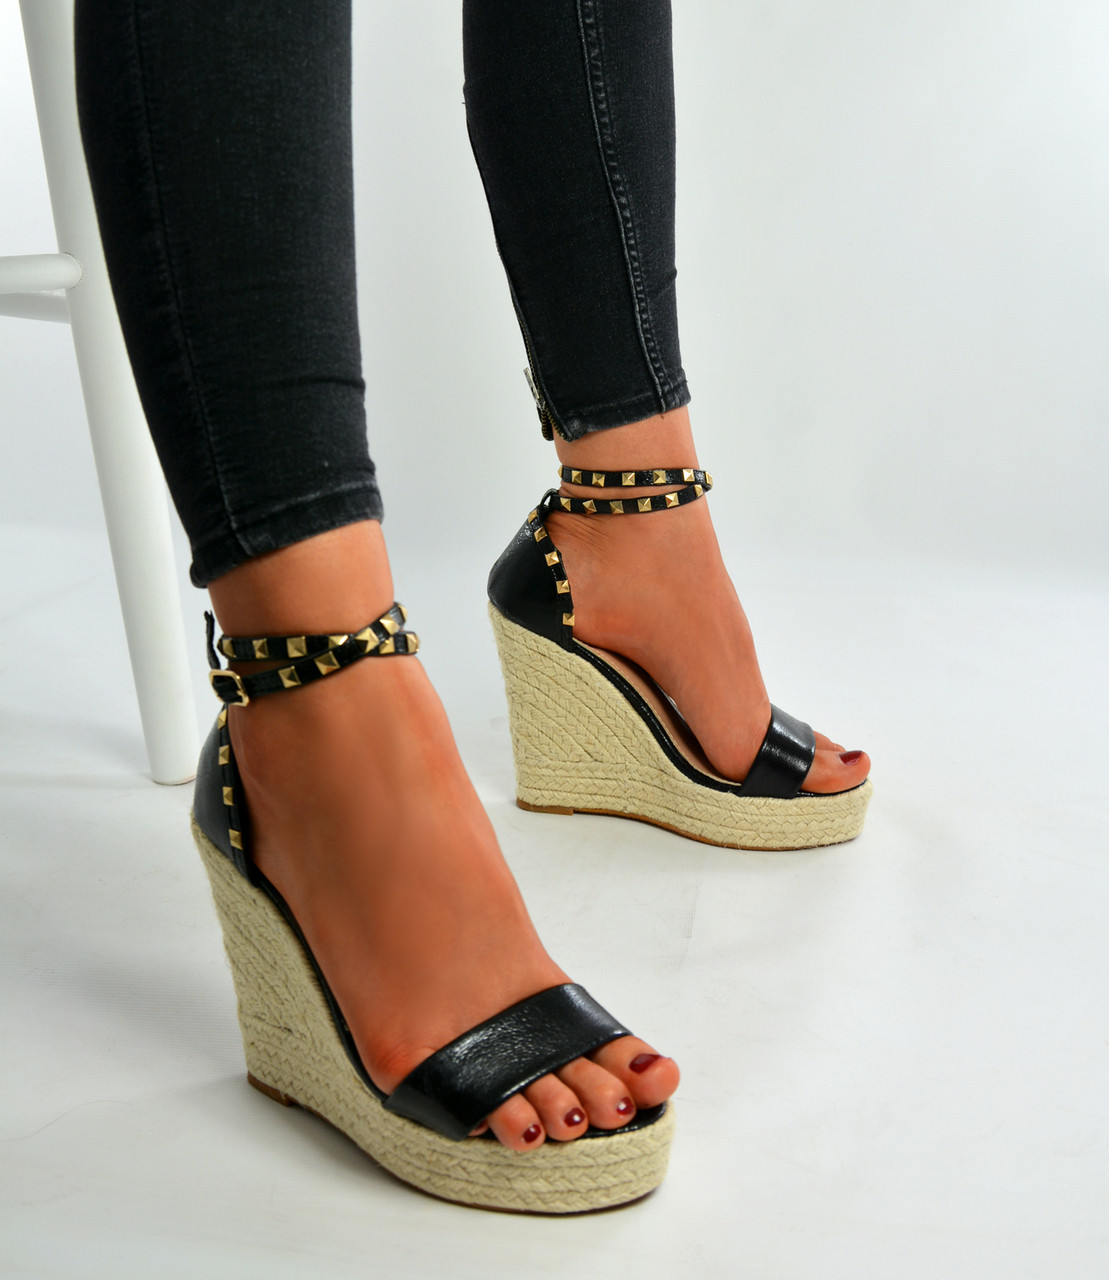 New Womens High Wedge Heels Ladies Espadrille Studded